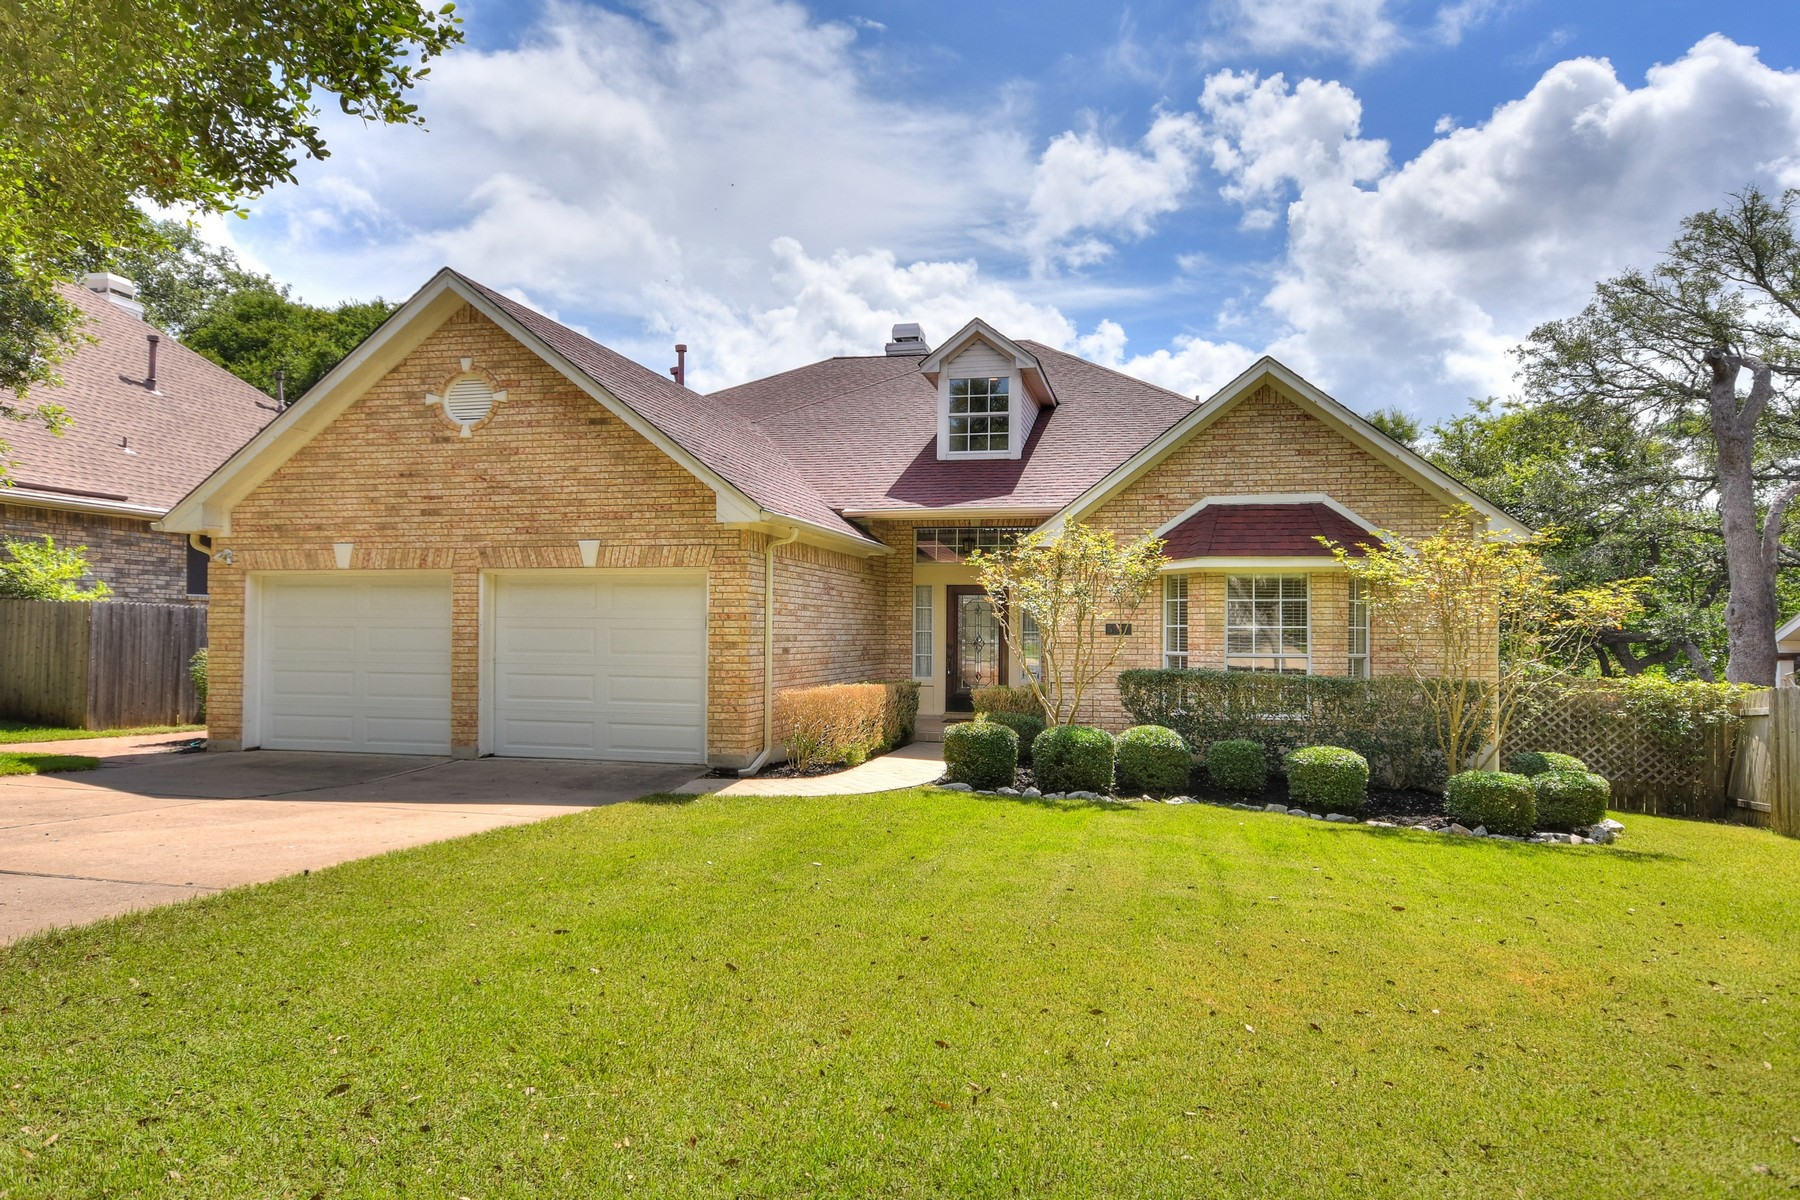 Single Family Home for Sale at Stylishly Updated in Circle C 5900 Back Bay Ln Austin, Texas 78739 United States